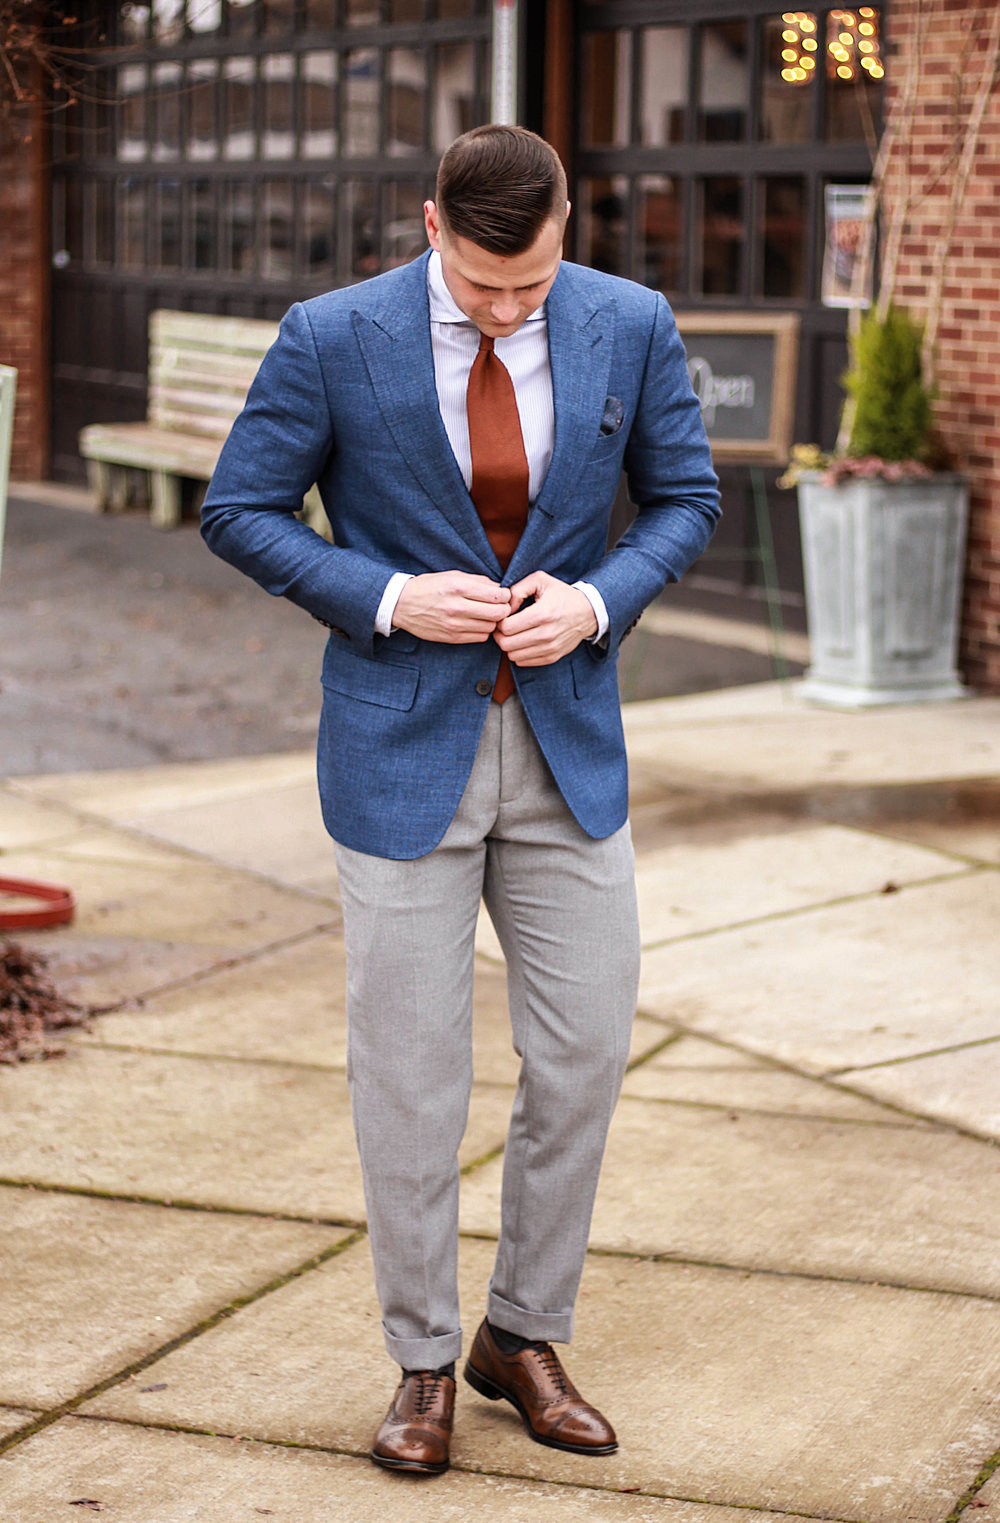 Spring Apparel, Spring Fashion Inspiration, Men's Spring Outfits, Men's Timeless Fashion, Men's Classic Fashion, Dapper Fashion, How to Wear A Suit, Seattle Style, Ollis Leander